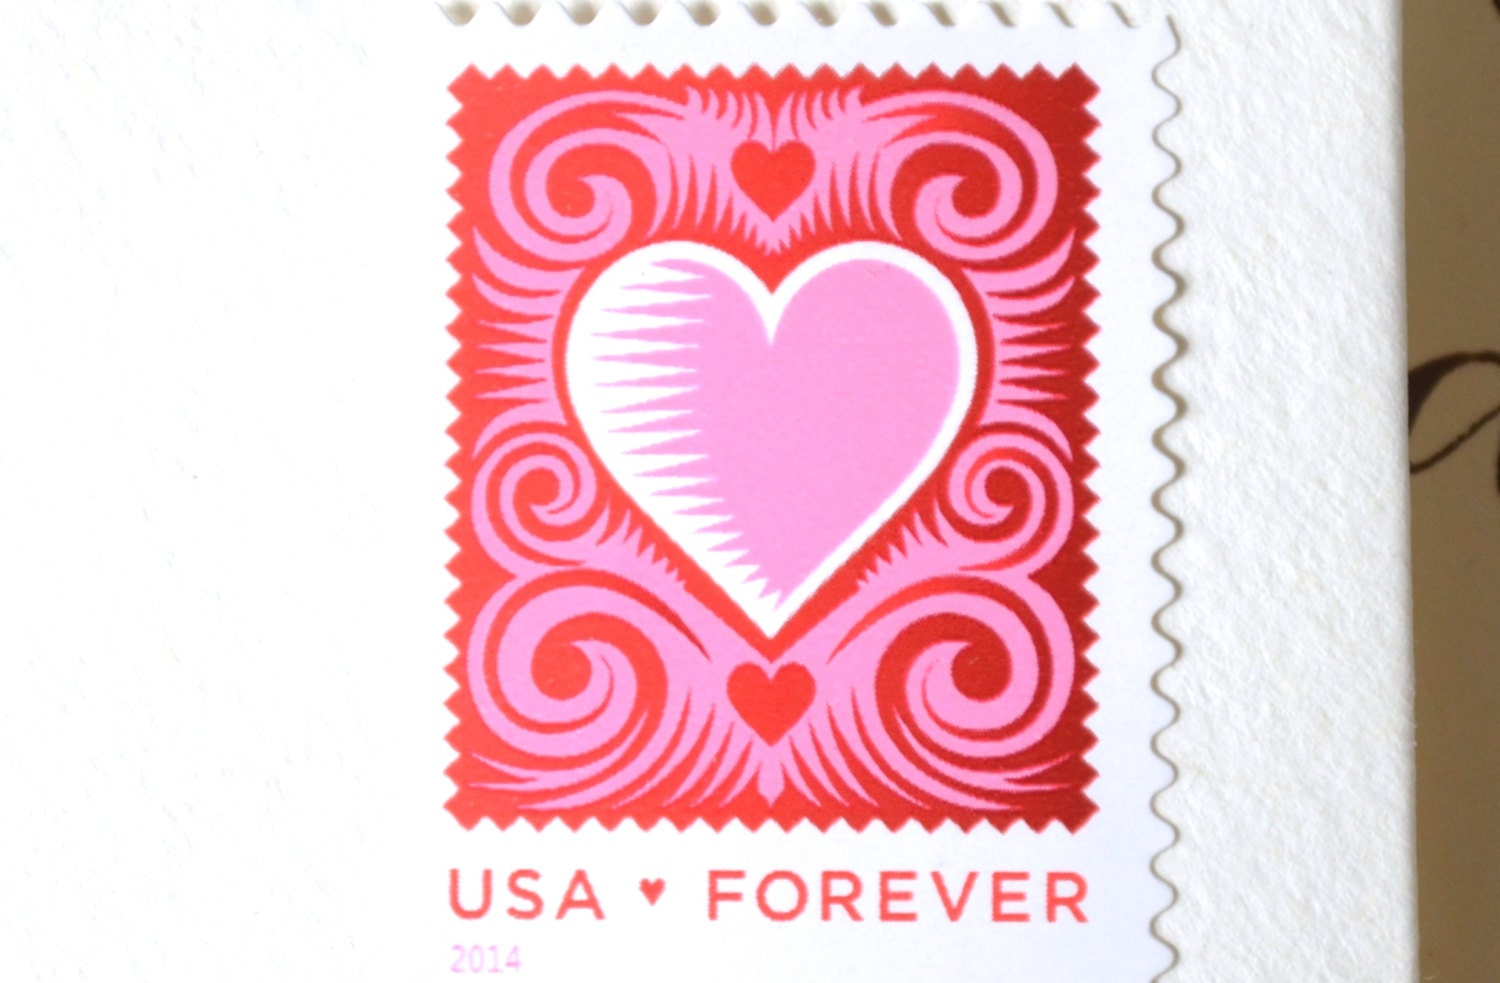 All forever stamp images Arctic Sea Ice Graphs - Google Sites